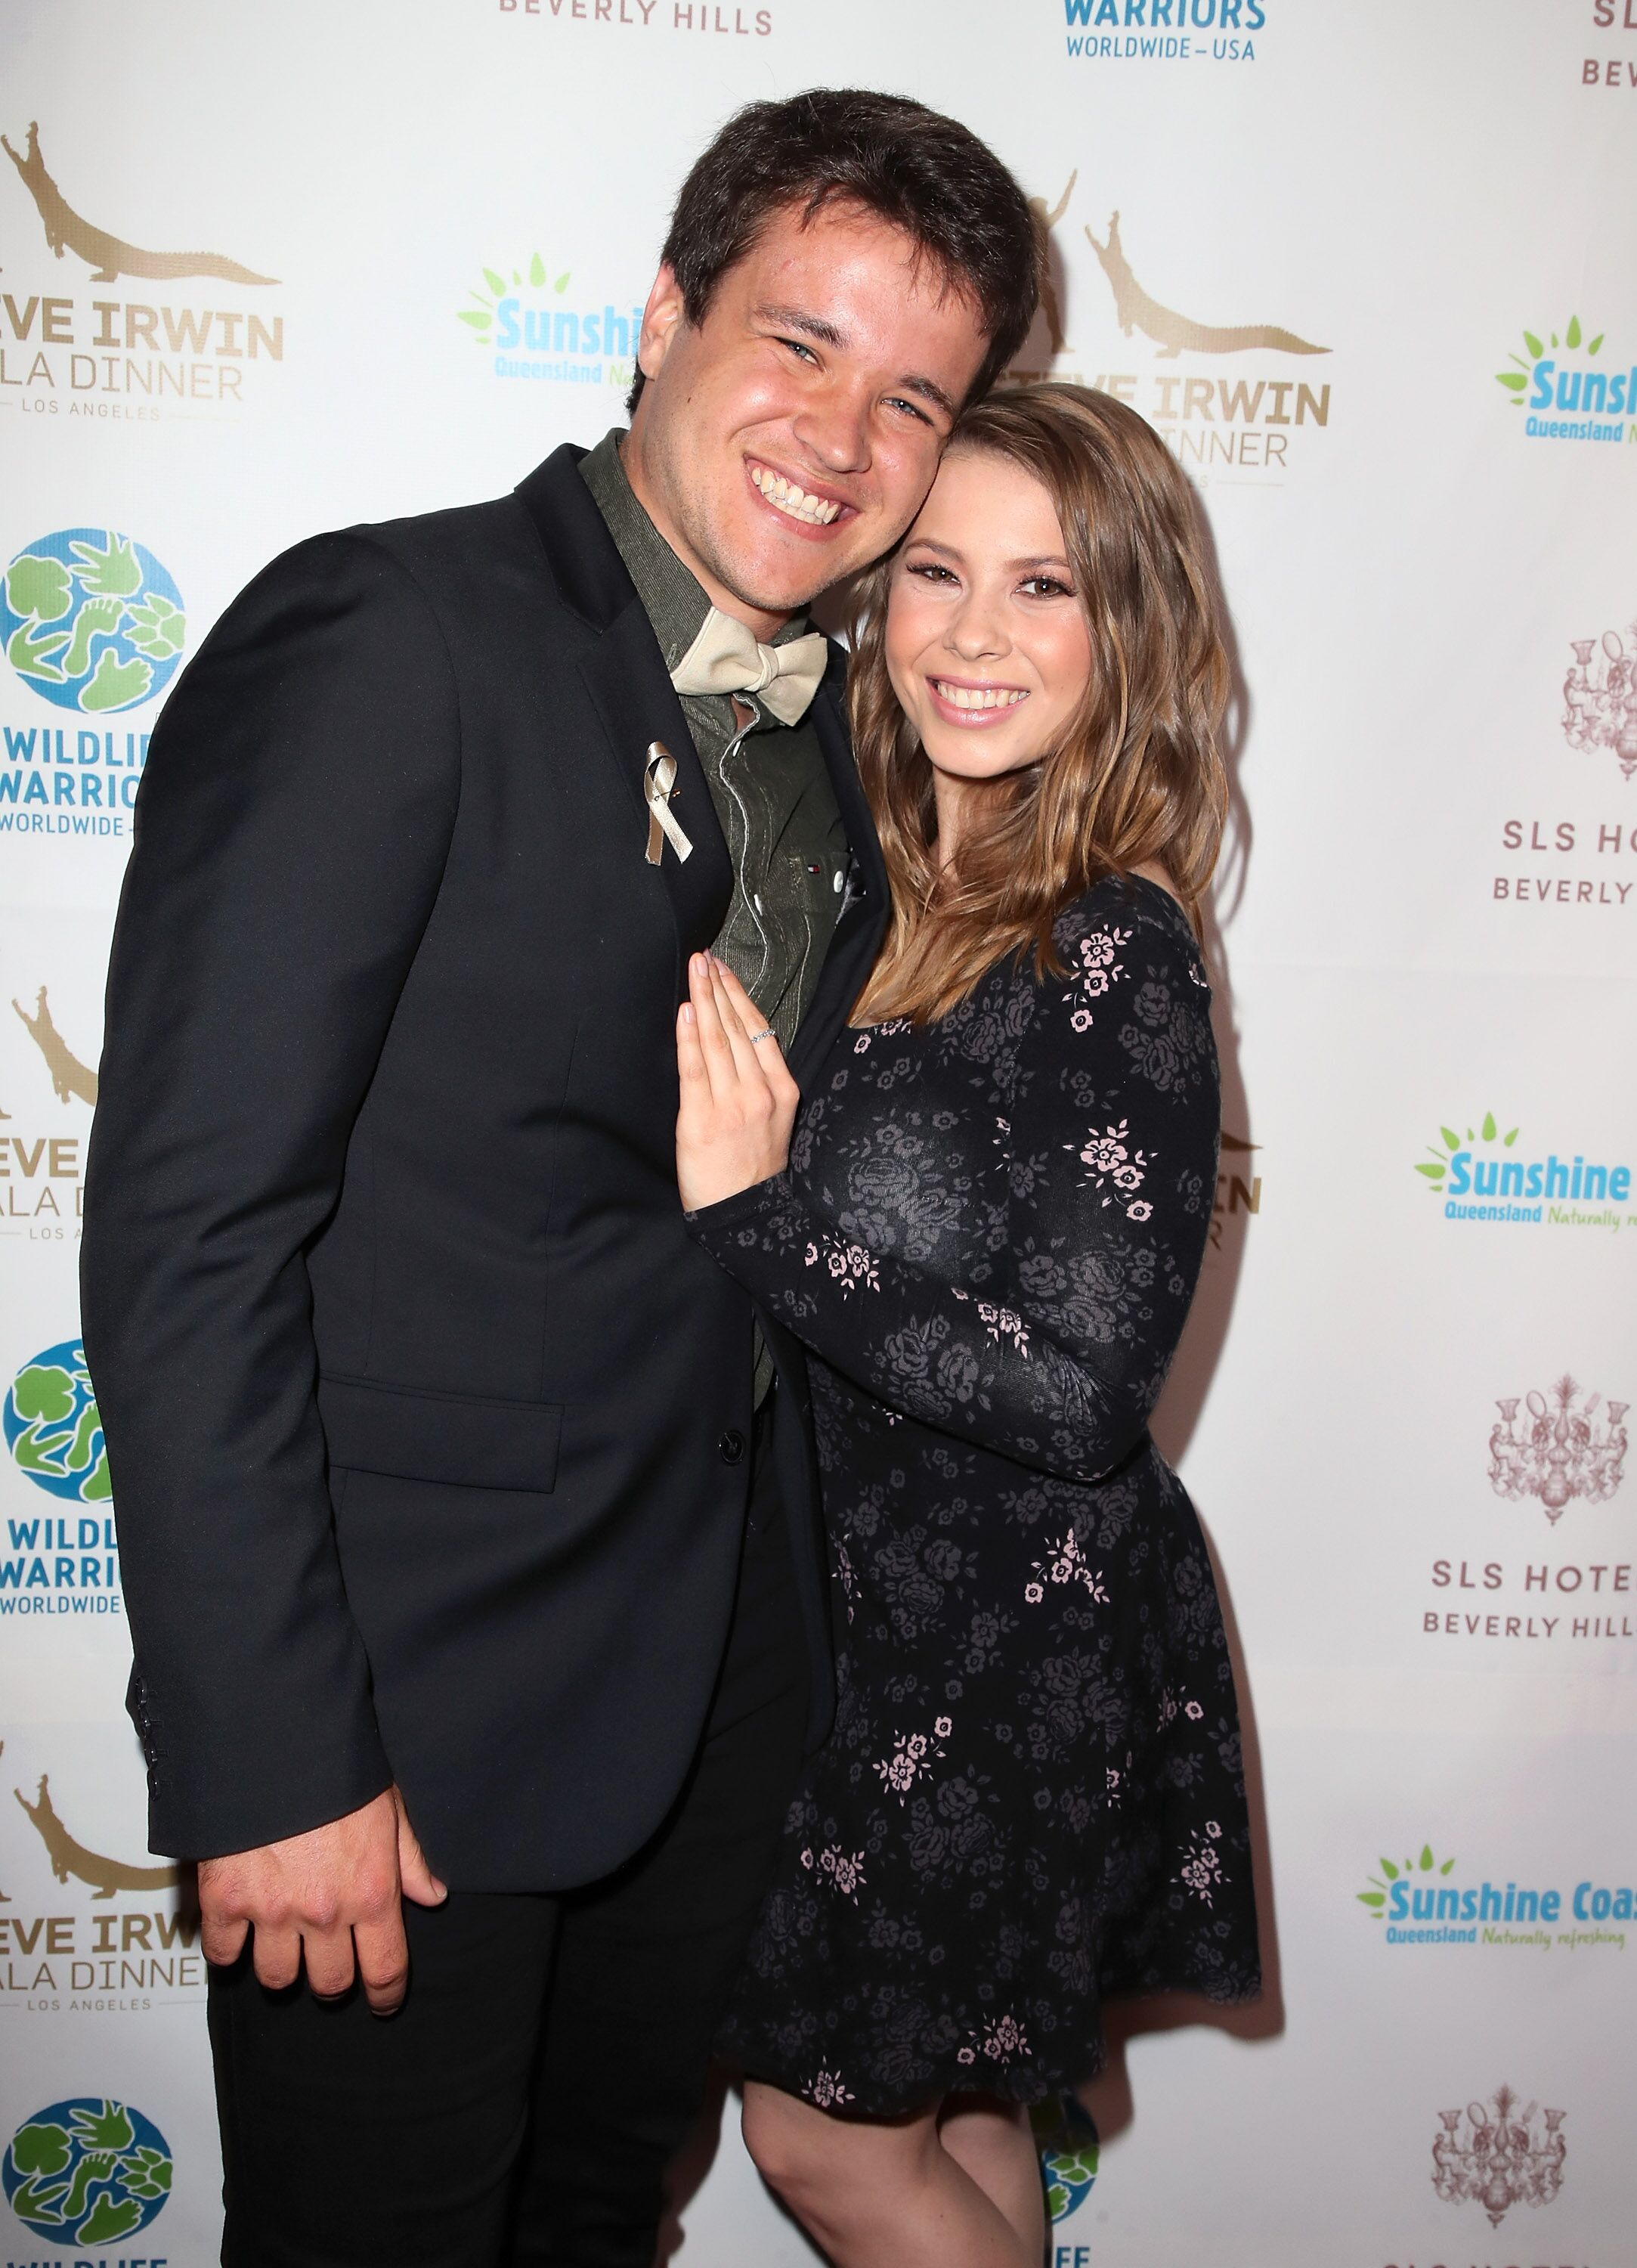 Bindi Irwin and Chandler Powell at the Steve Irwin Gala Dinner. | Source: Getty Images